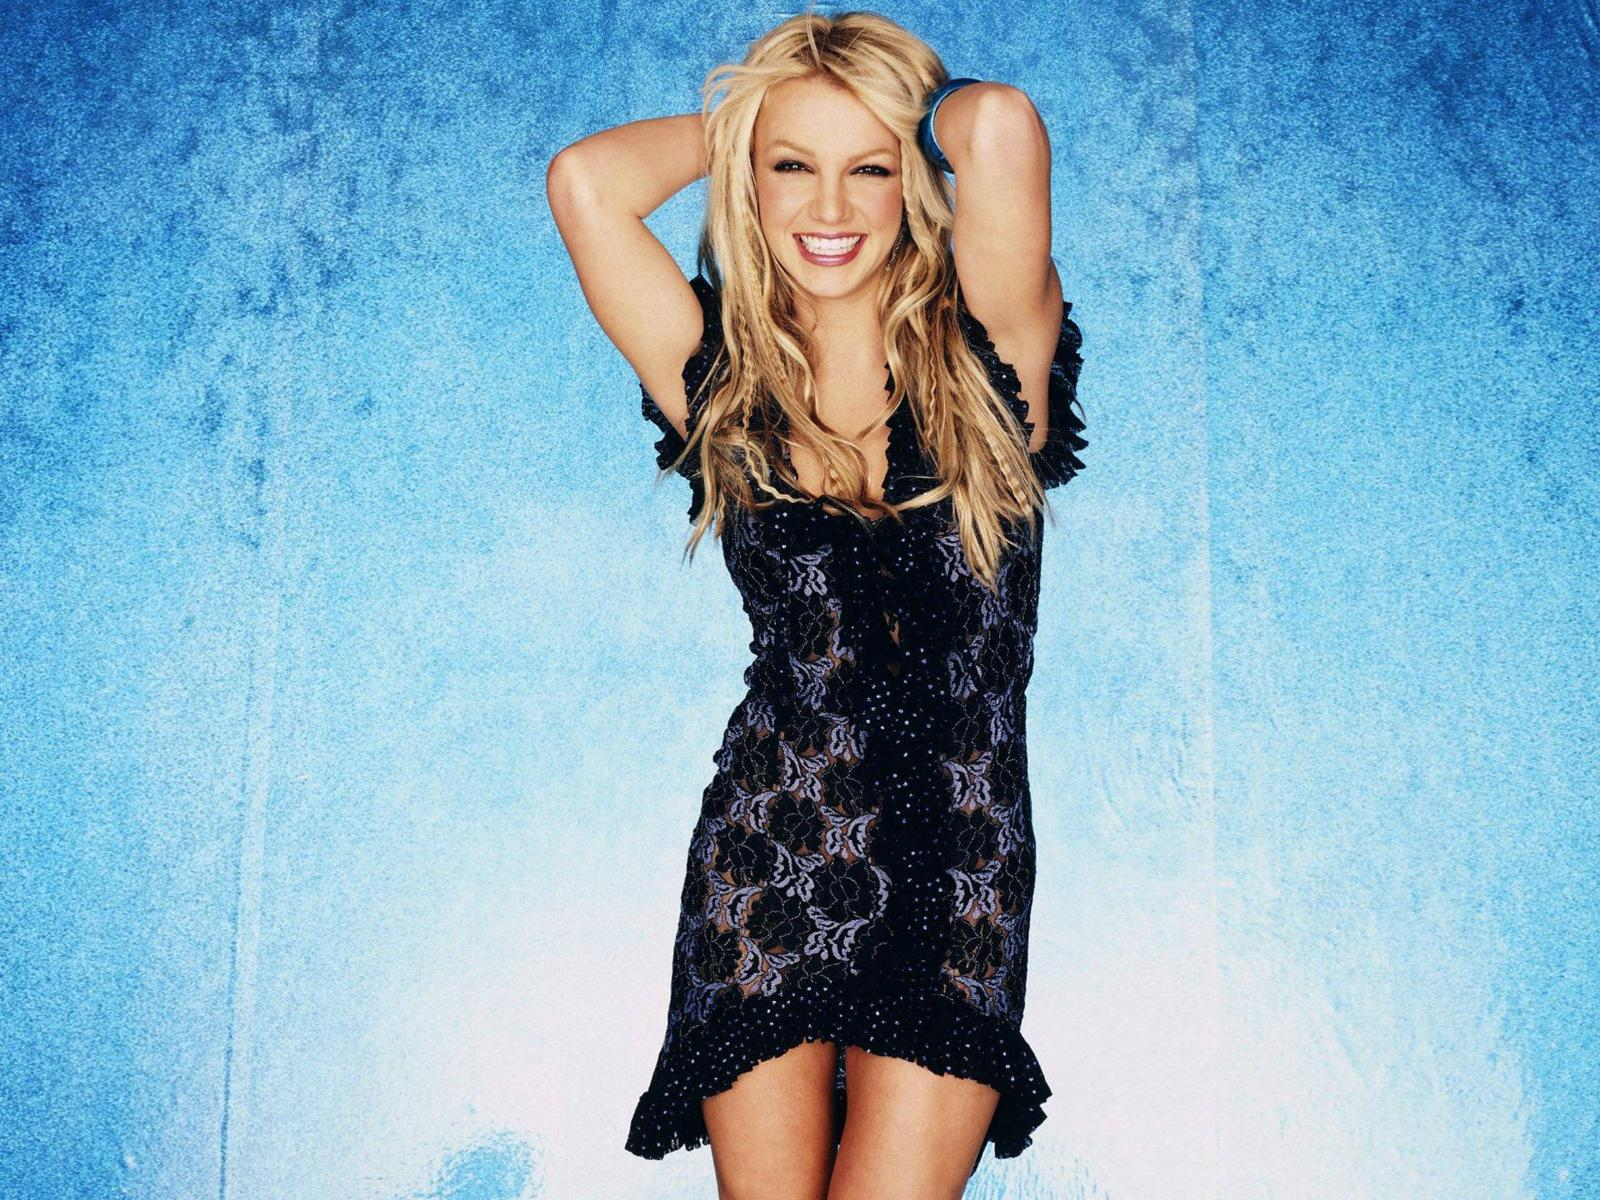 The best top desktop britney spears wallpapers Hottest%252BBritney%252BSpears%252BHD%252BDesktop%252Bwallpapers hot nude sexy topless britney spears hd wallpapers global top actress nude sexy big ass big boobs actress model 1 Maria Sharapova full nude naked